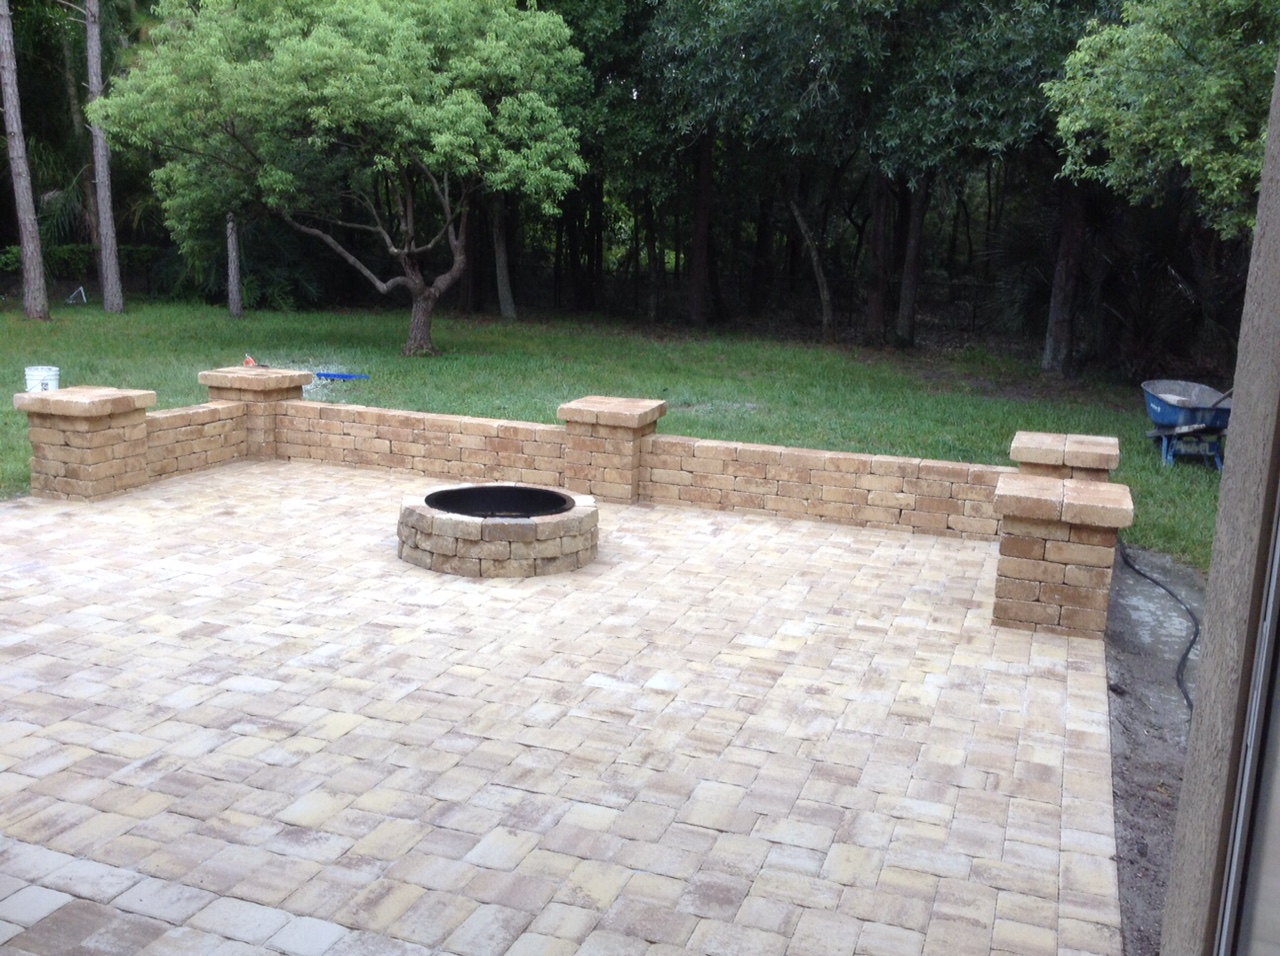 Beau Paver Patio Area With Fire Pit And Sitting Wall.